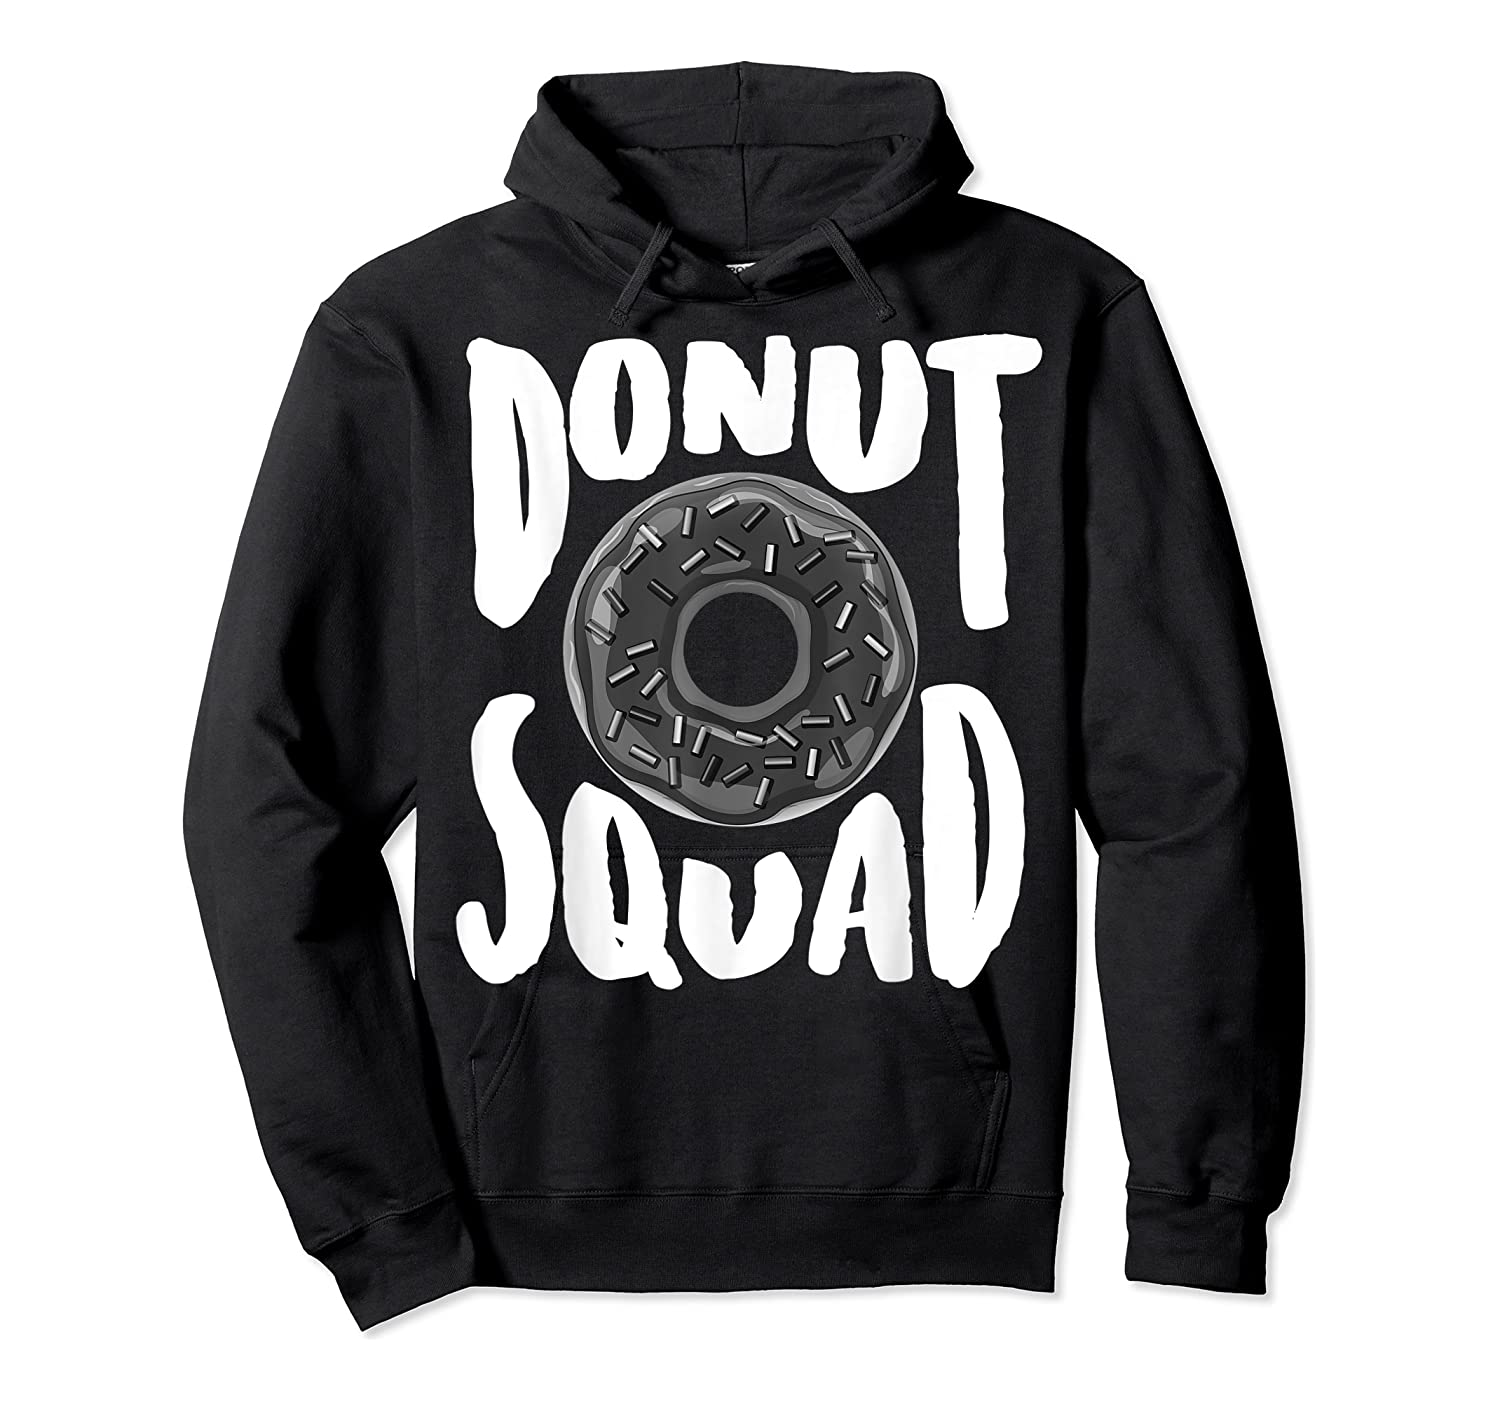 Donut Squad Cool Donut Lover Doughnut Gift Shirts Unisex Pullover Hoodie